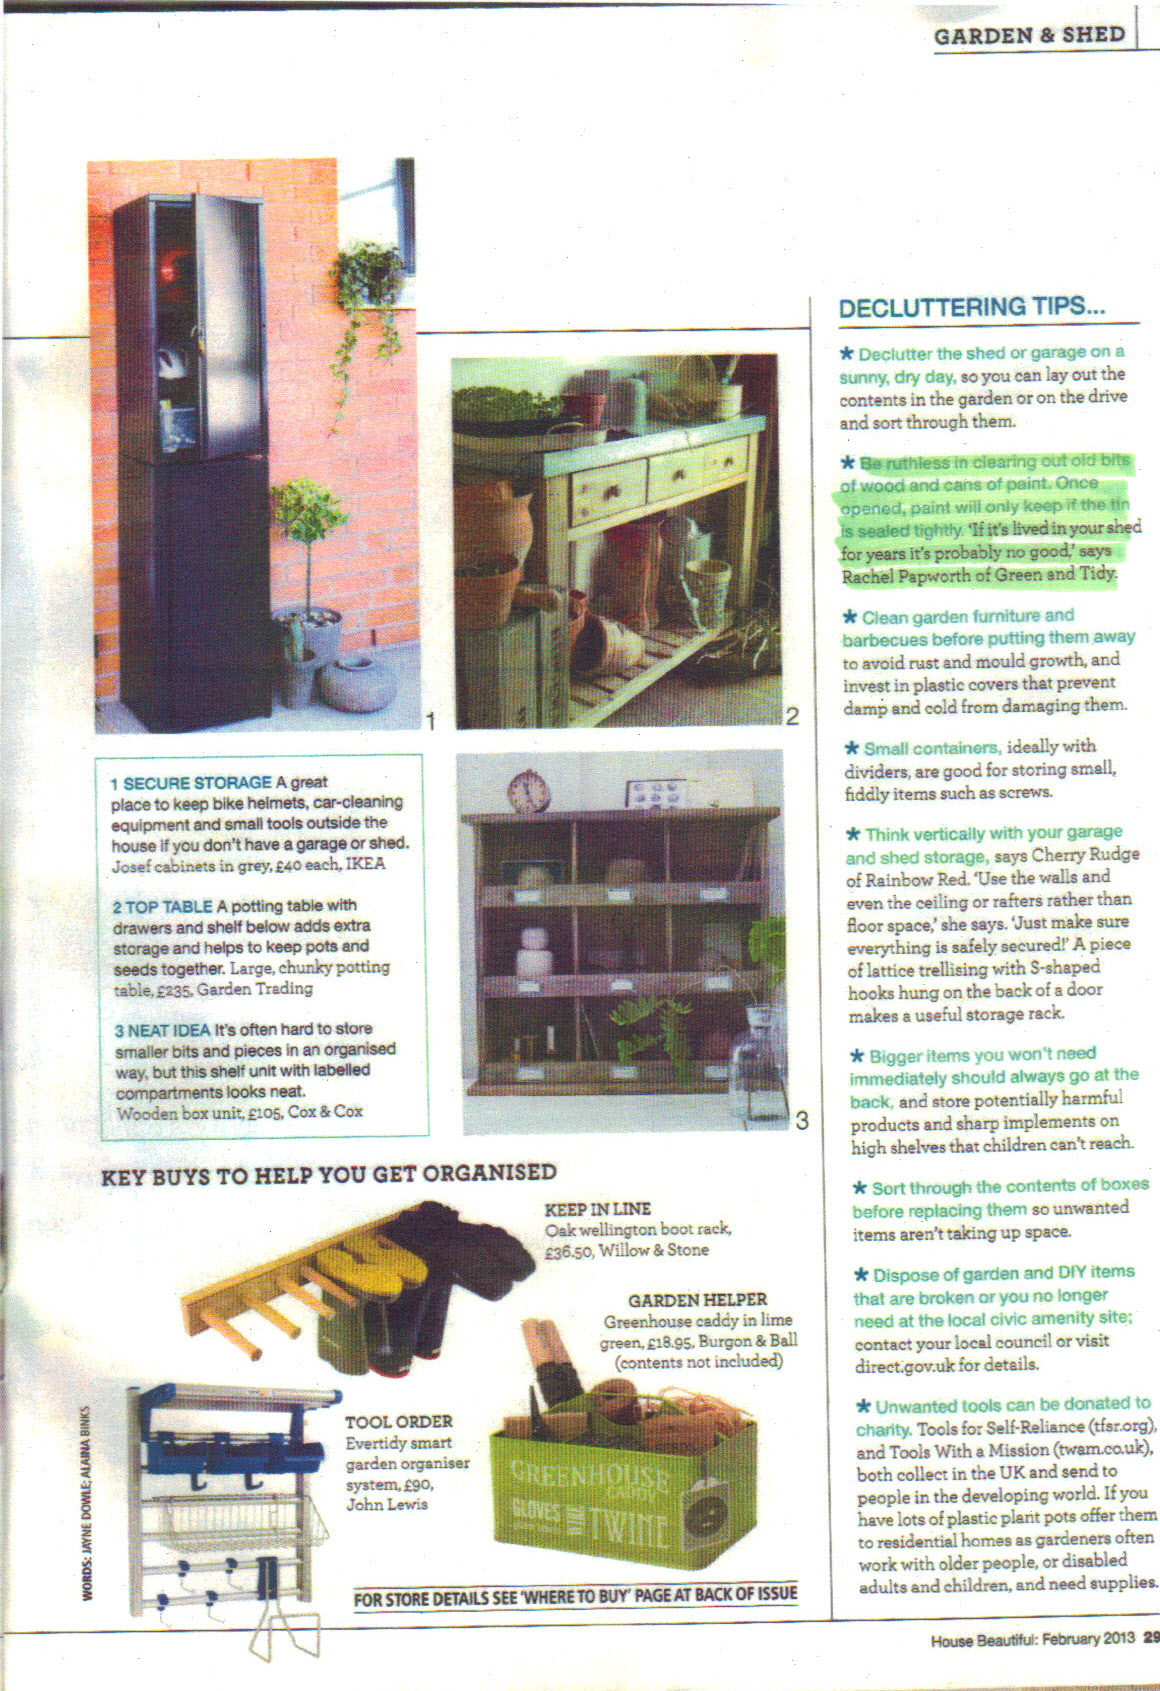 House Beautiful Feb 2013 p29 -  highlight